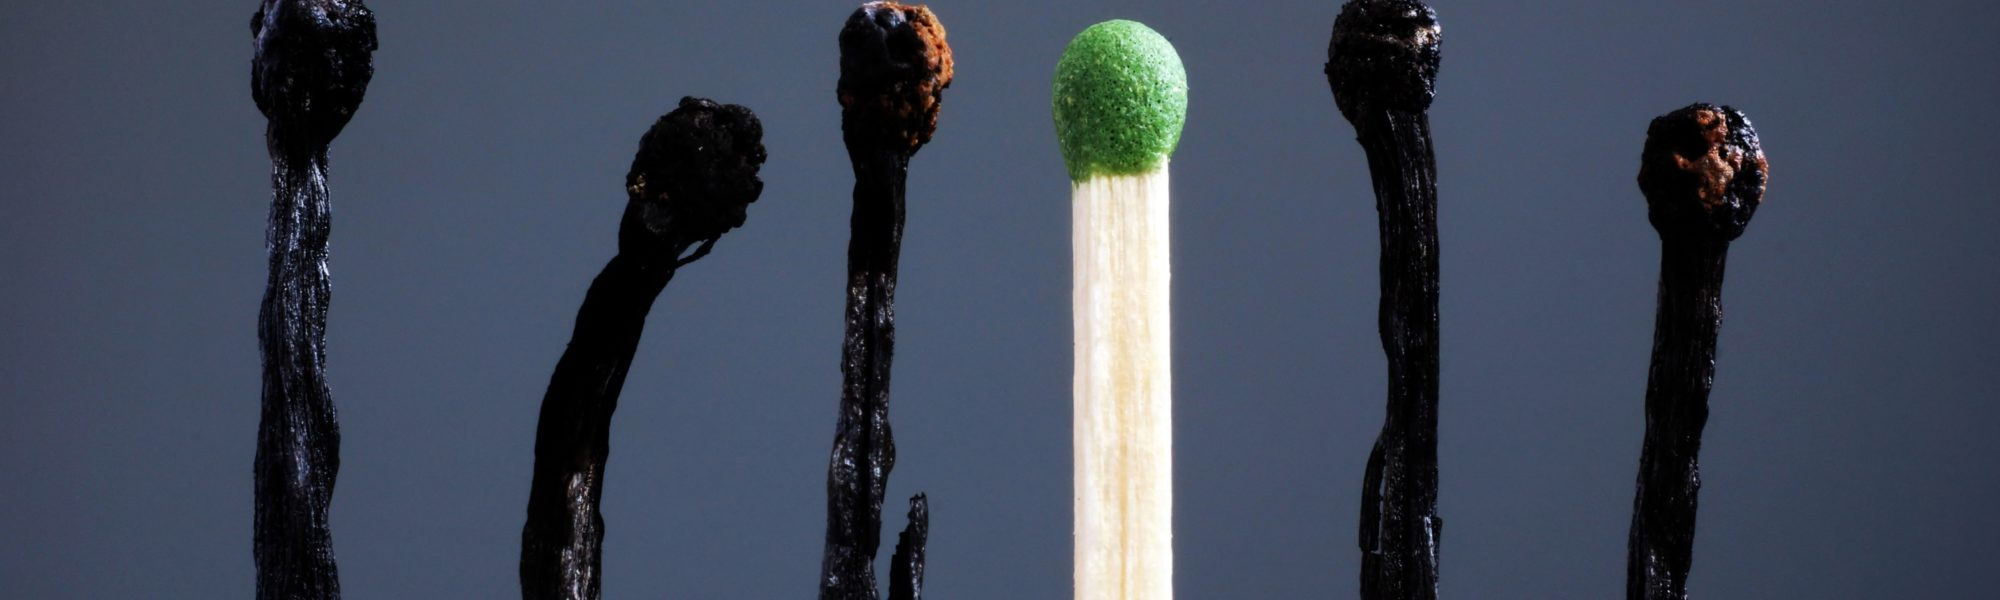 Line of burnt matches and one brand new Individuality leadership burnout at work and energy 1131847822 3869x2580